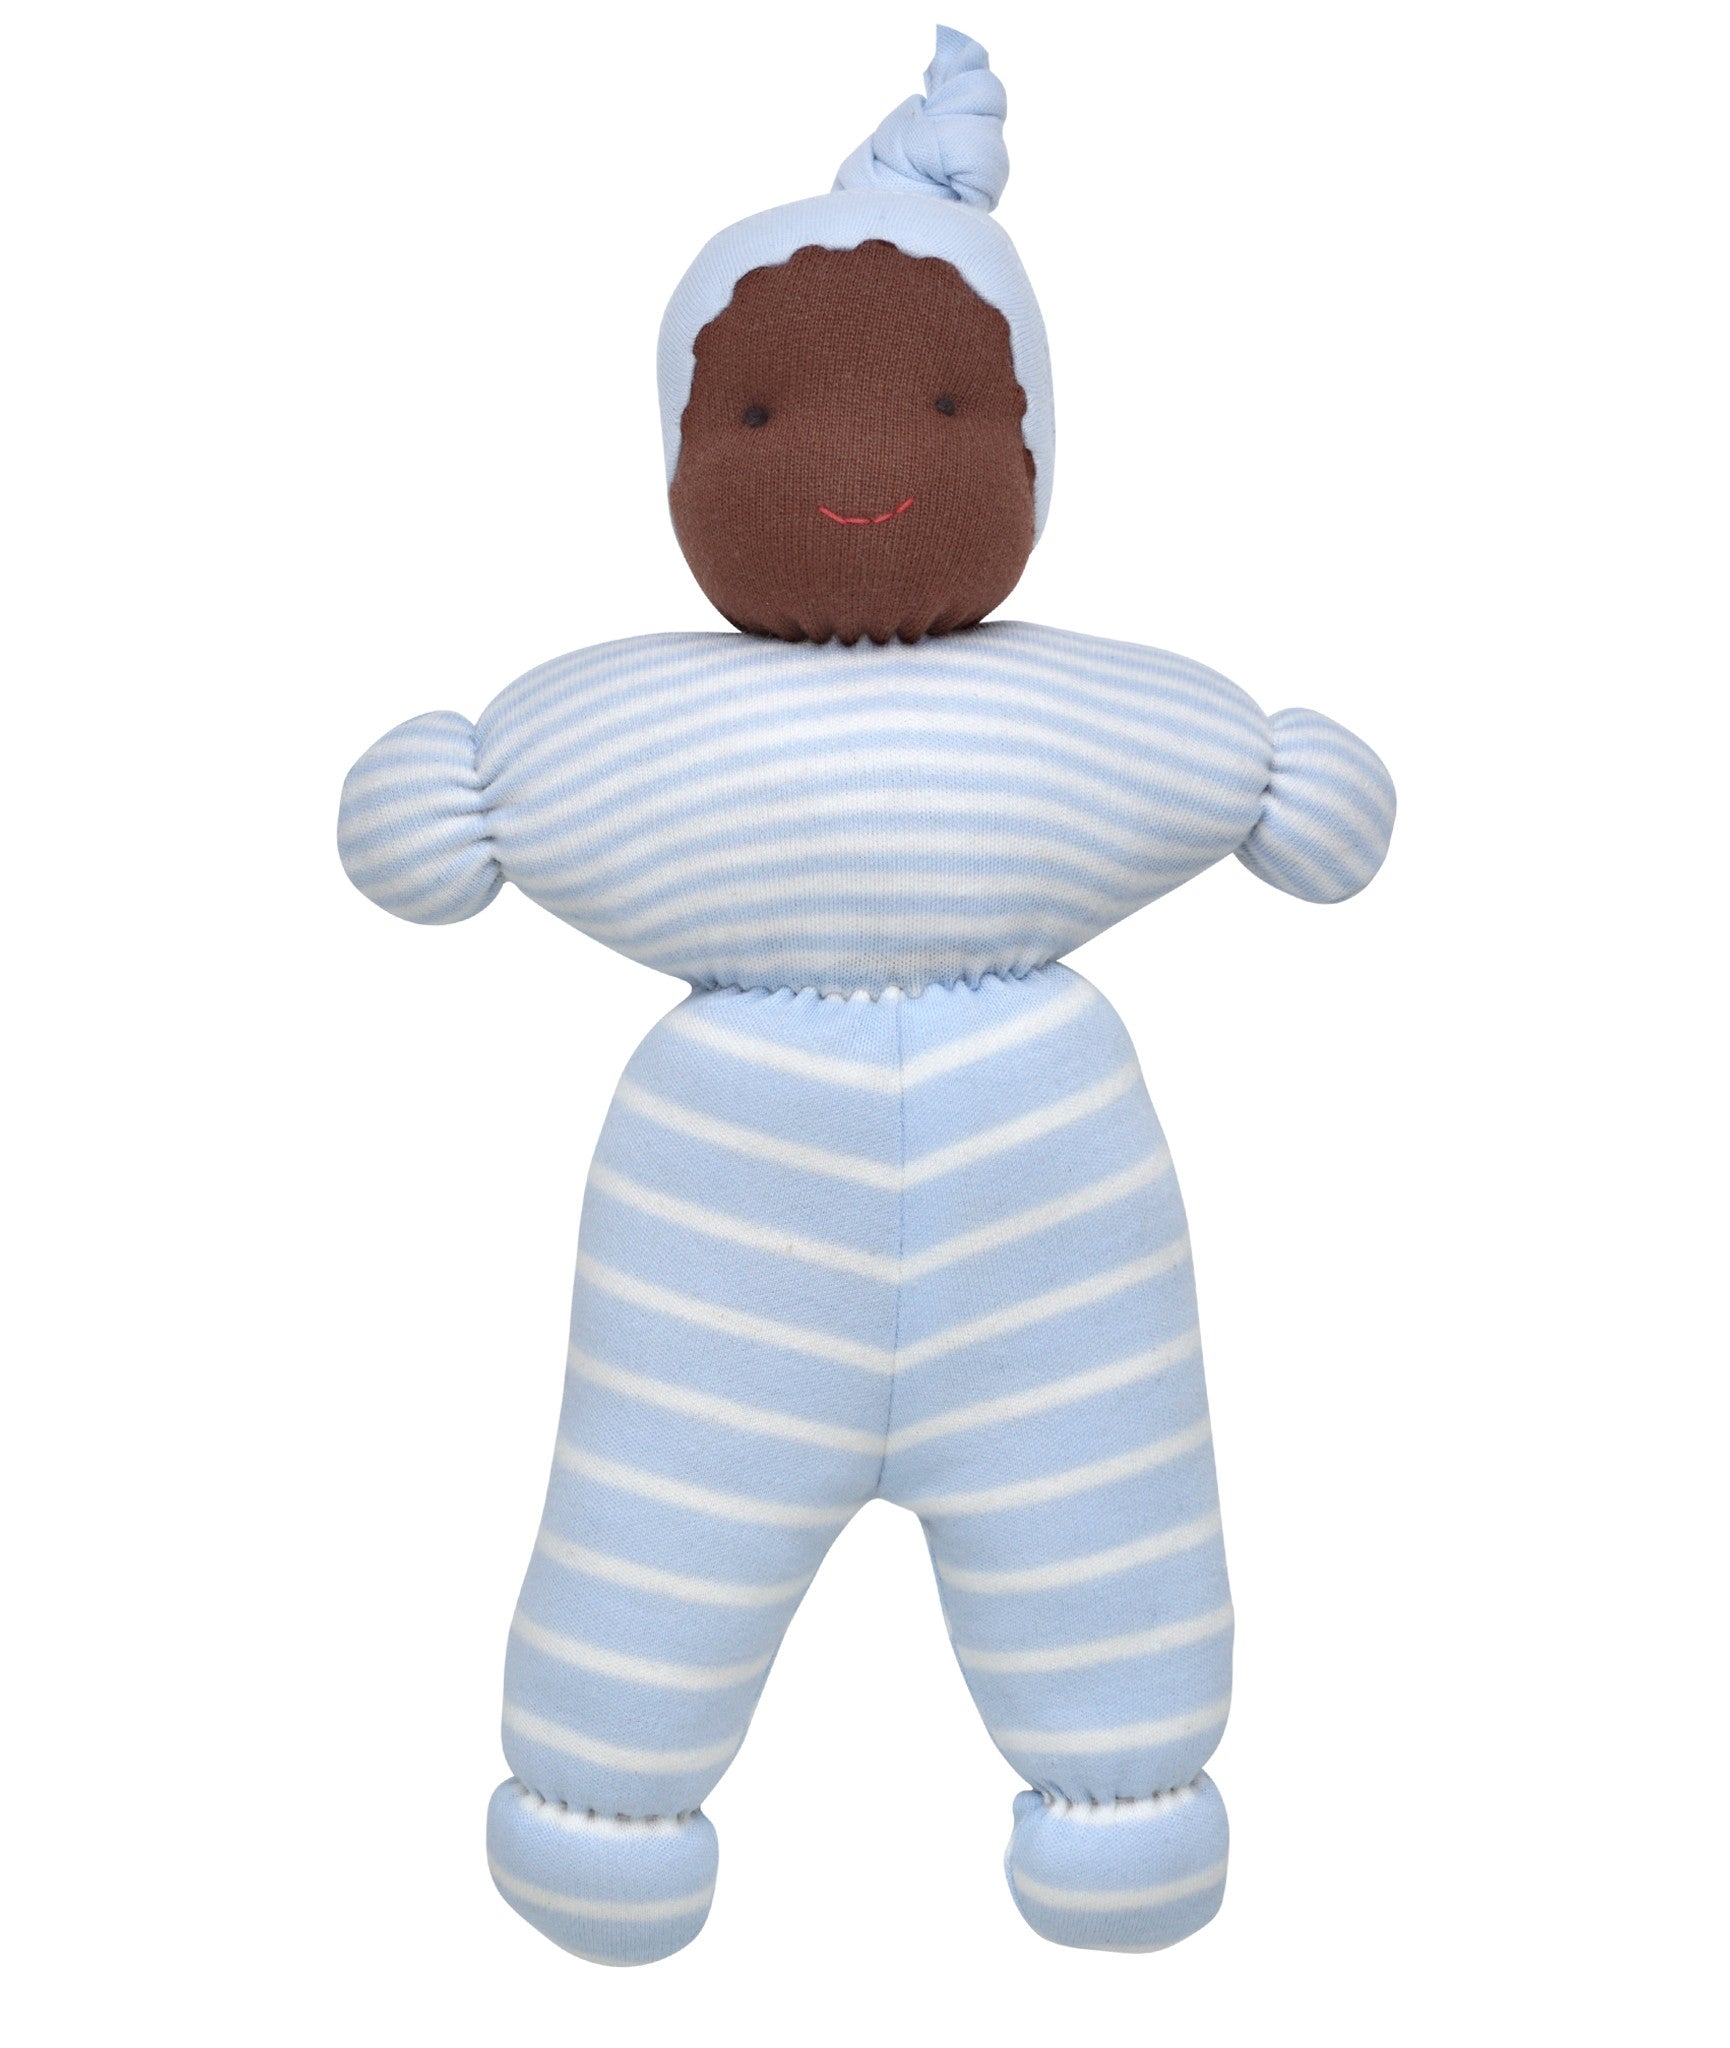 baby-boy-organic-cotton-doll-jayden